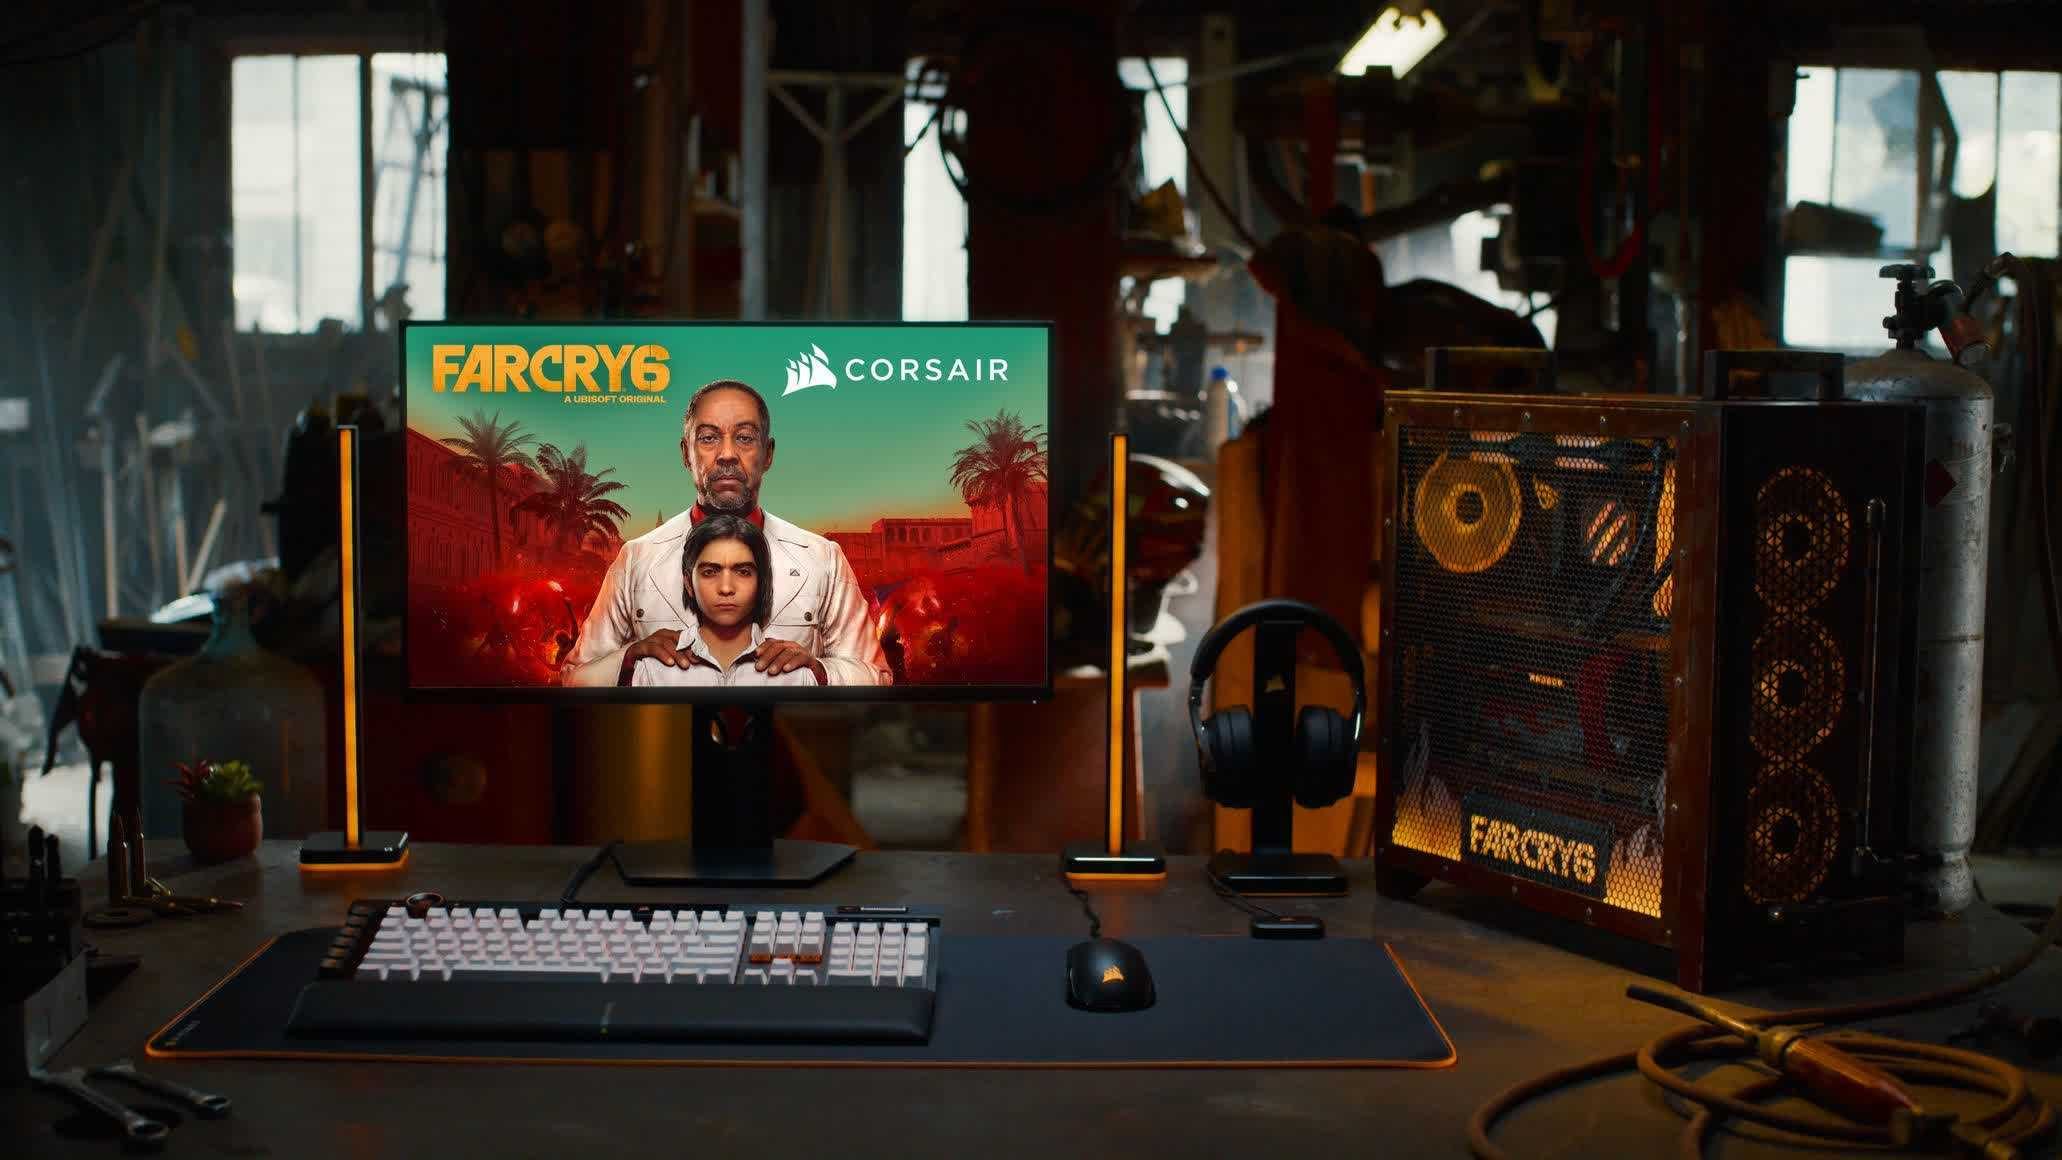 Corsair Partners with Ubisoft for an Immersive Far Cry Experience